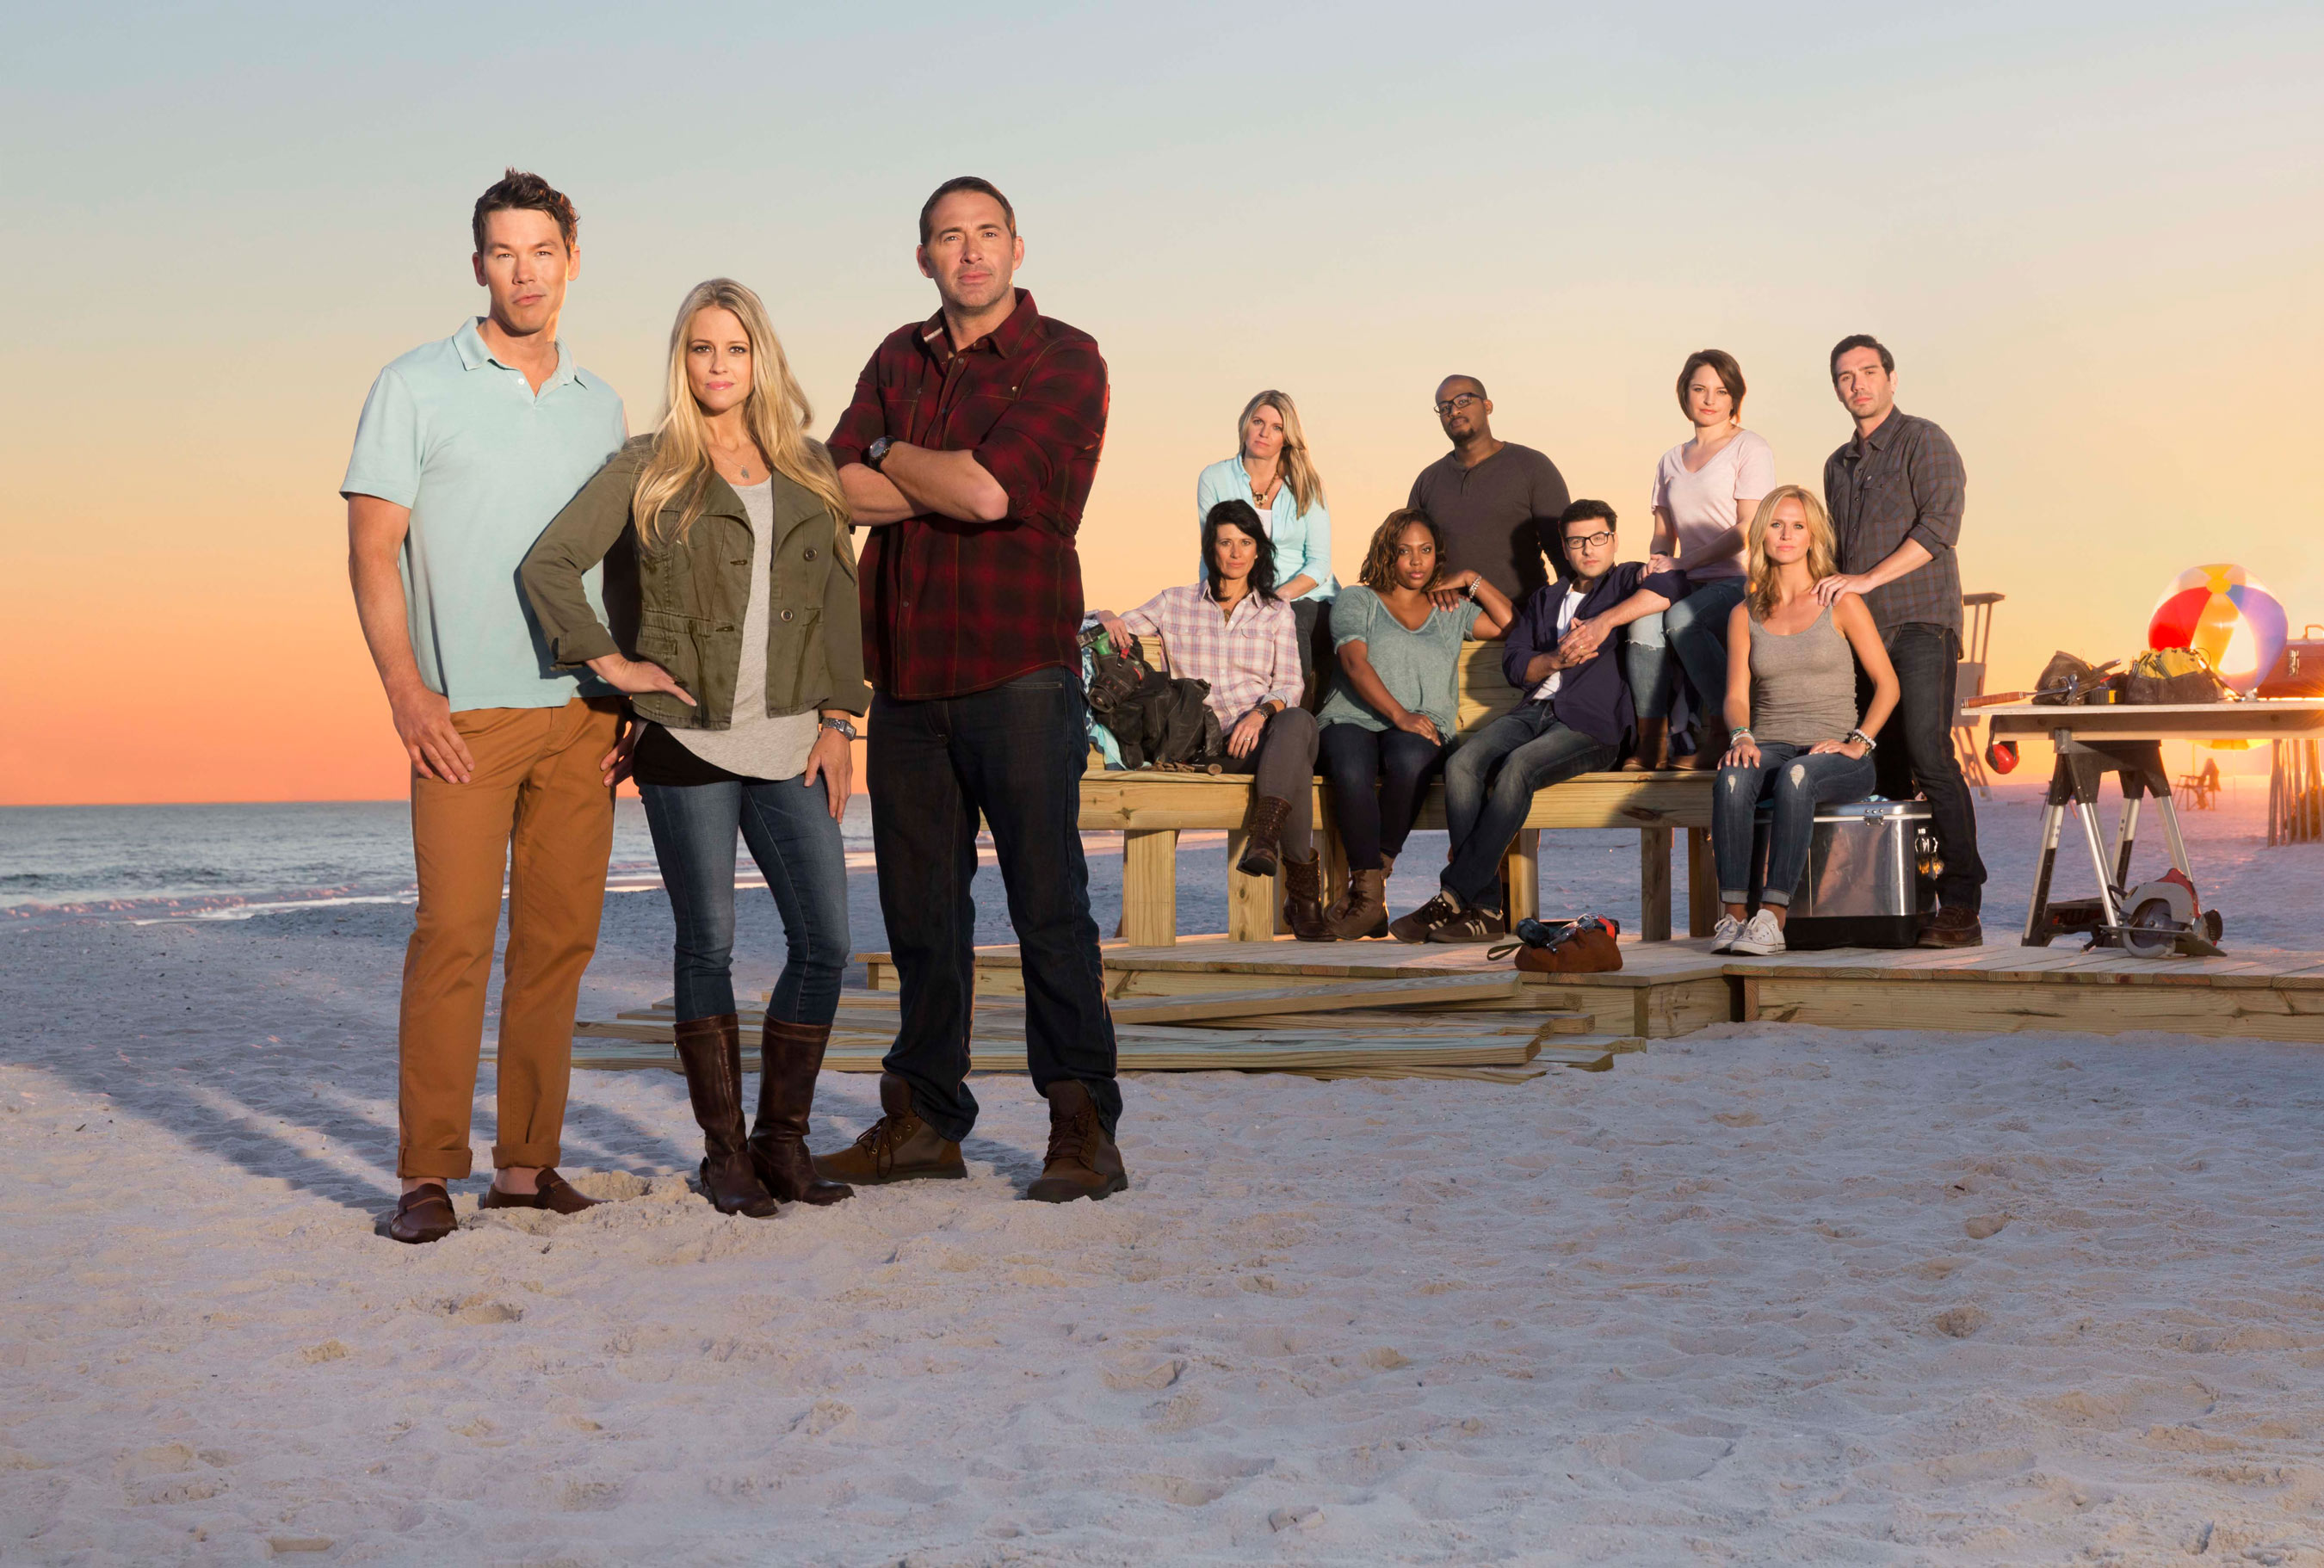 Hgtv s hot new renovation competition series beach flip debuts